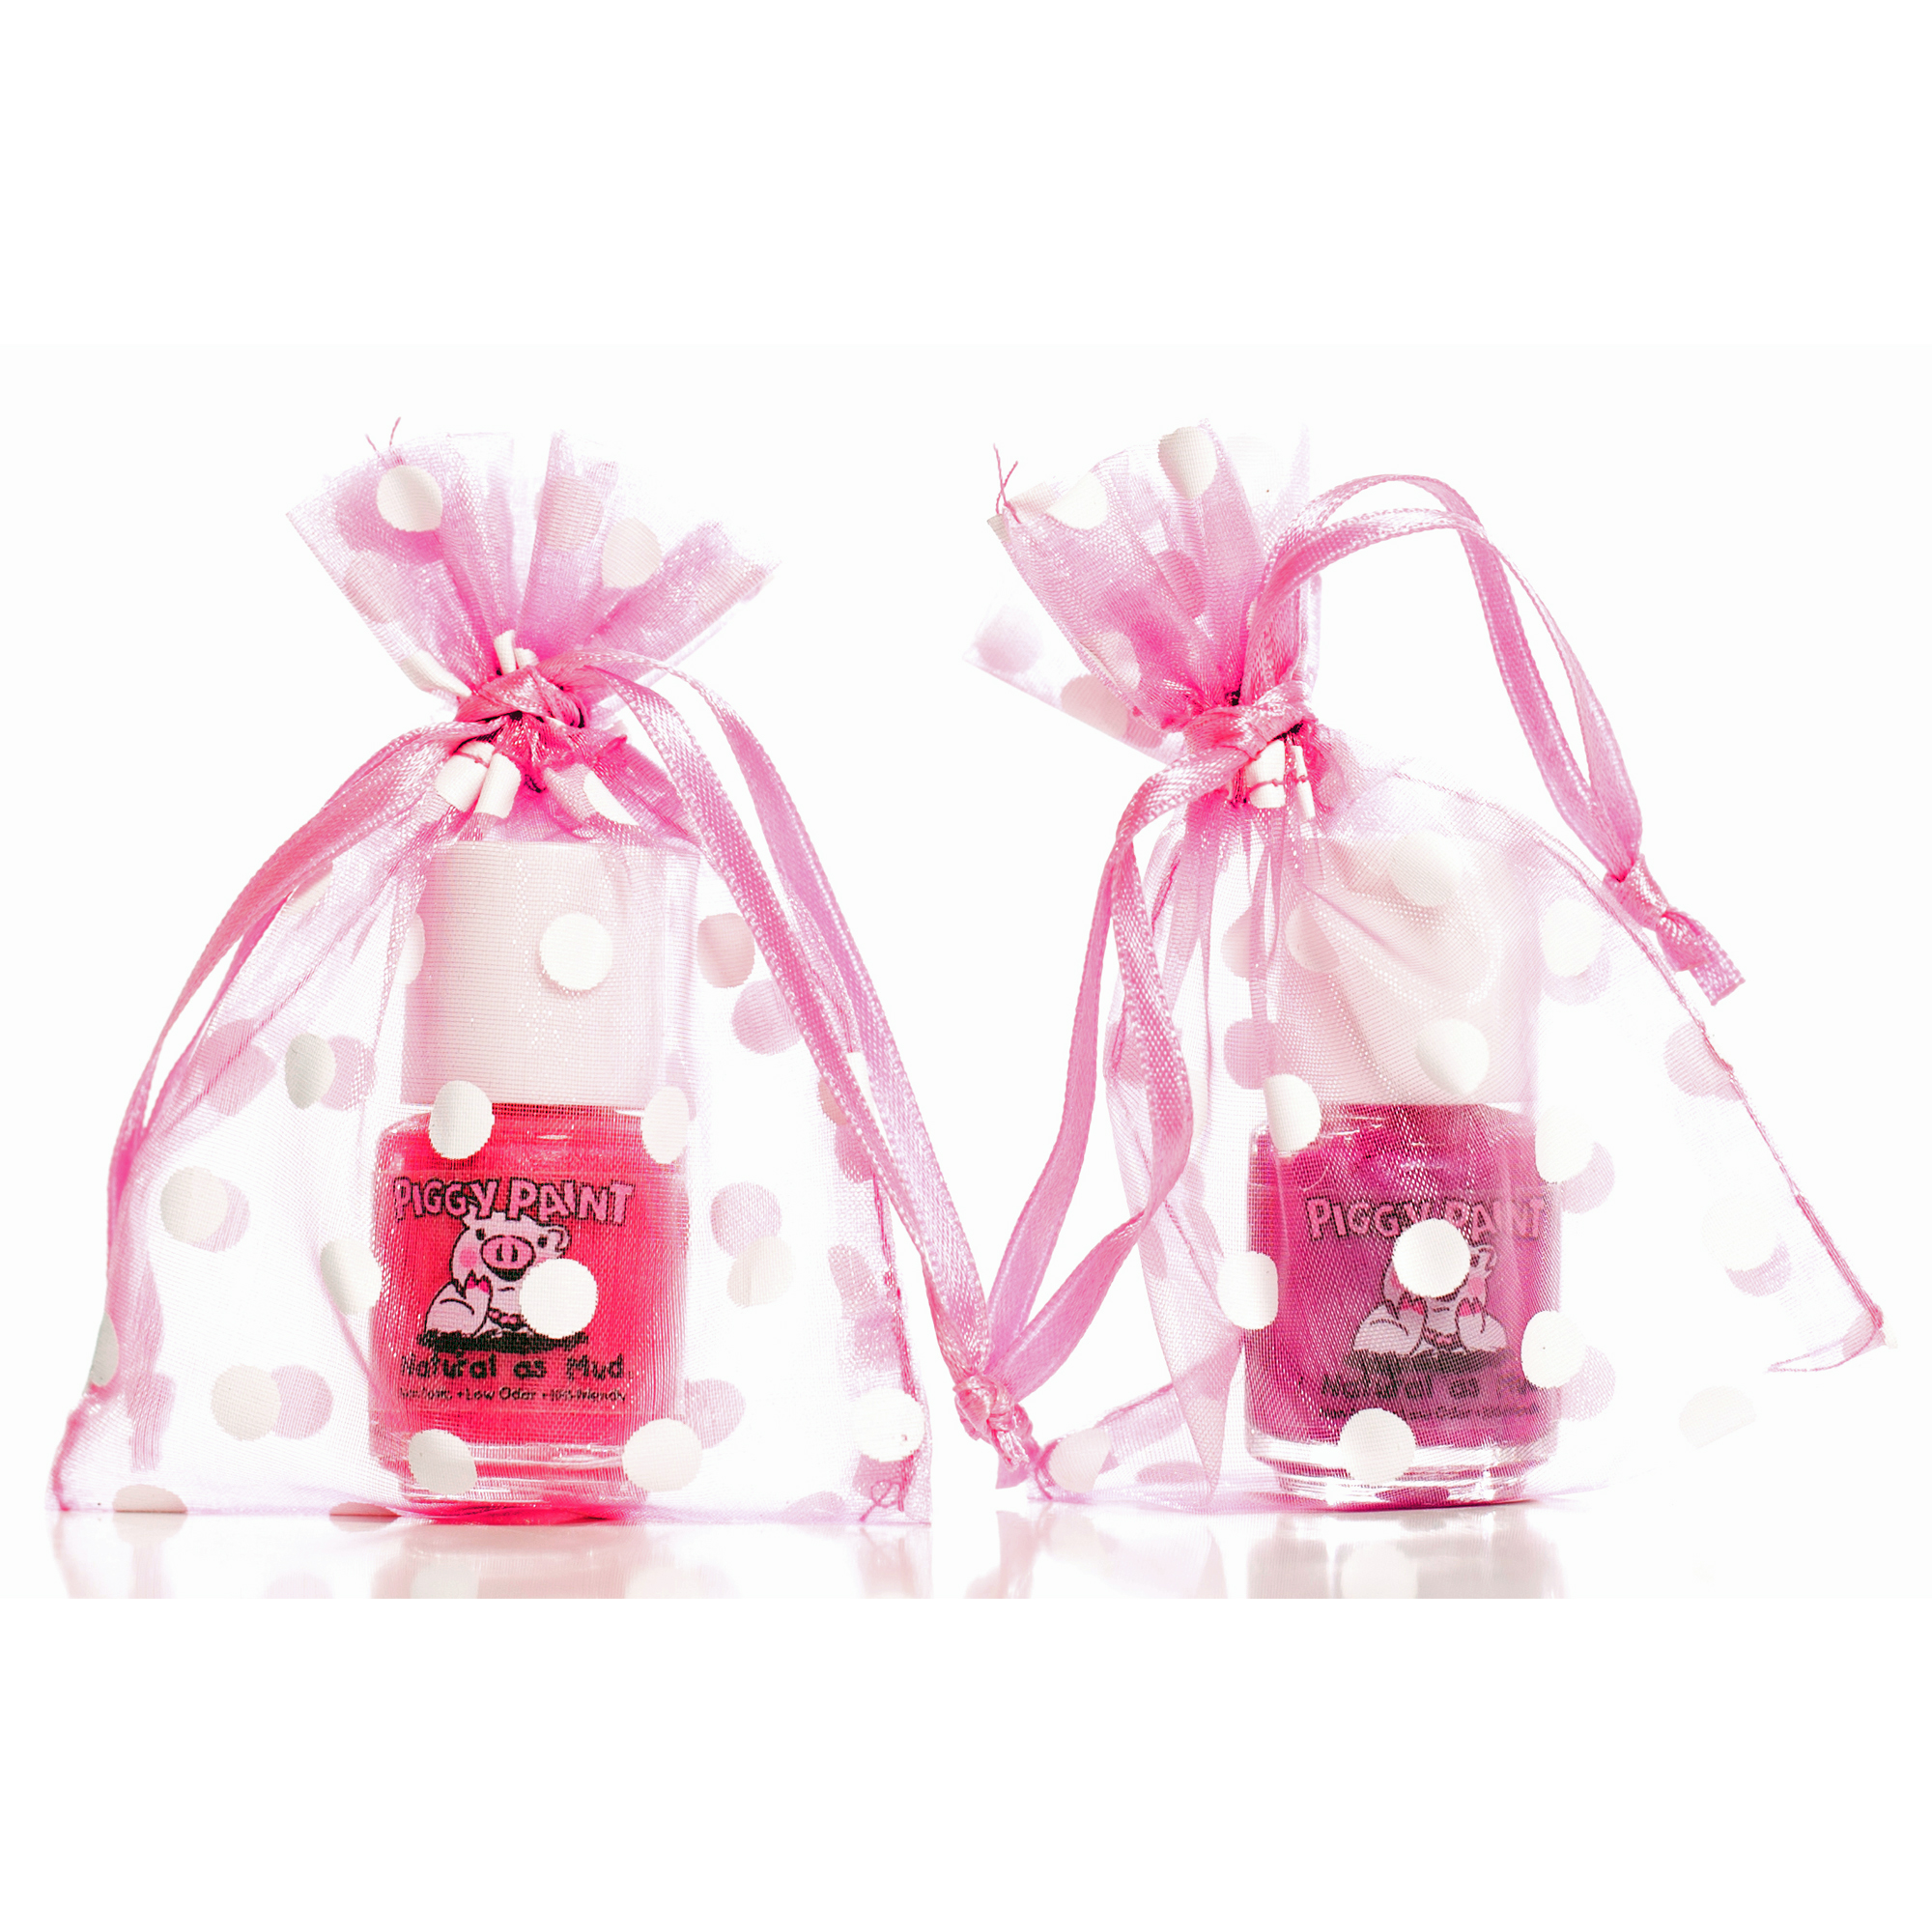 Piggy Paint Party Favors